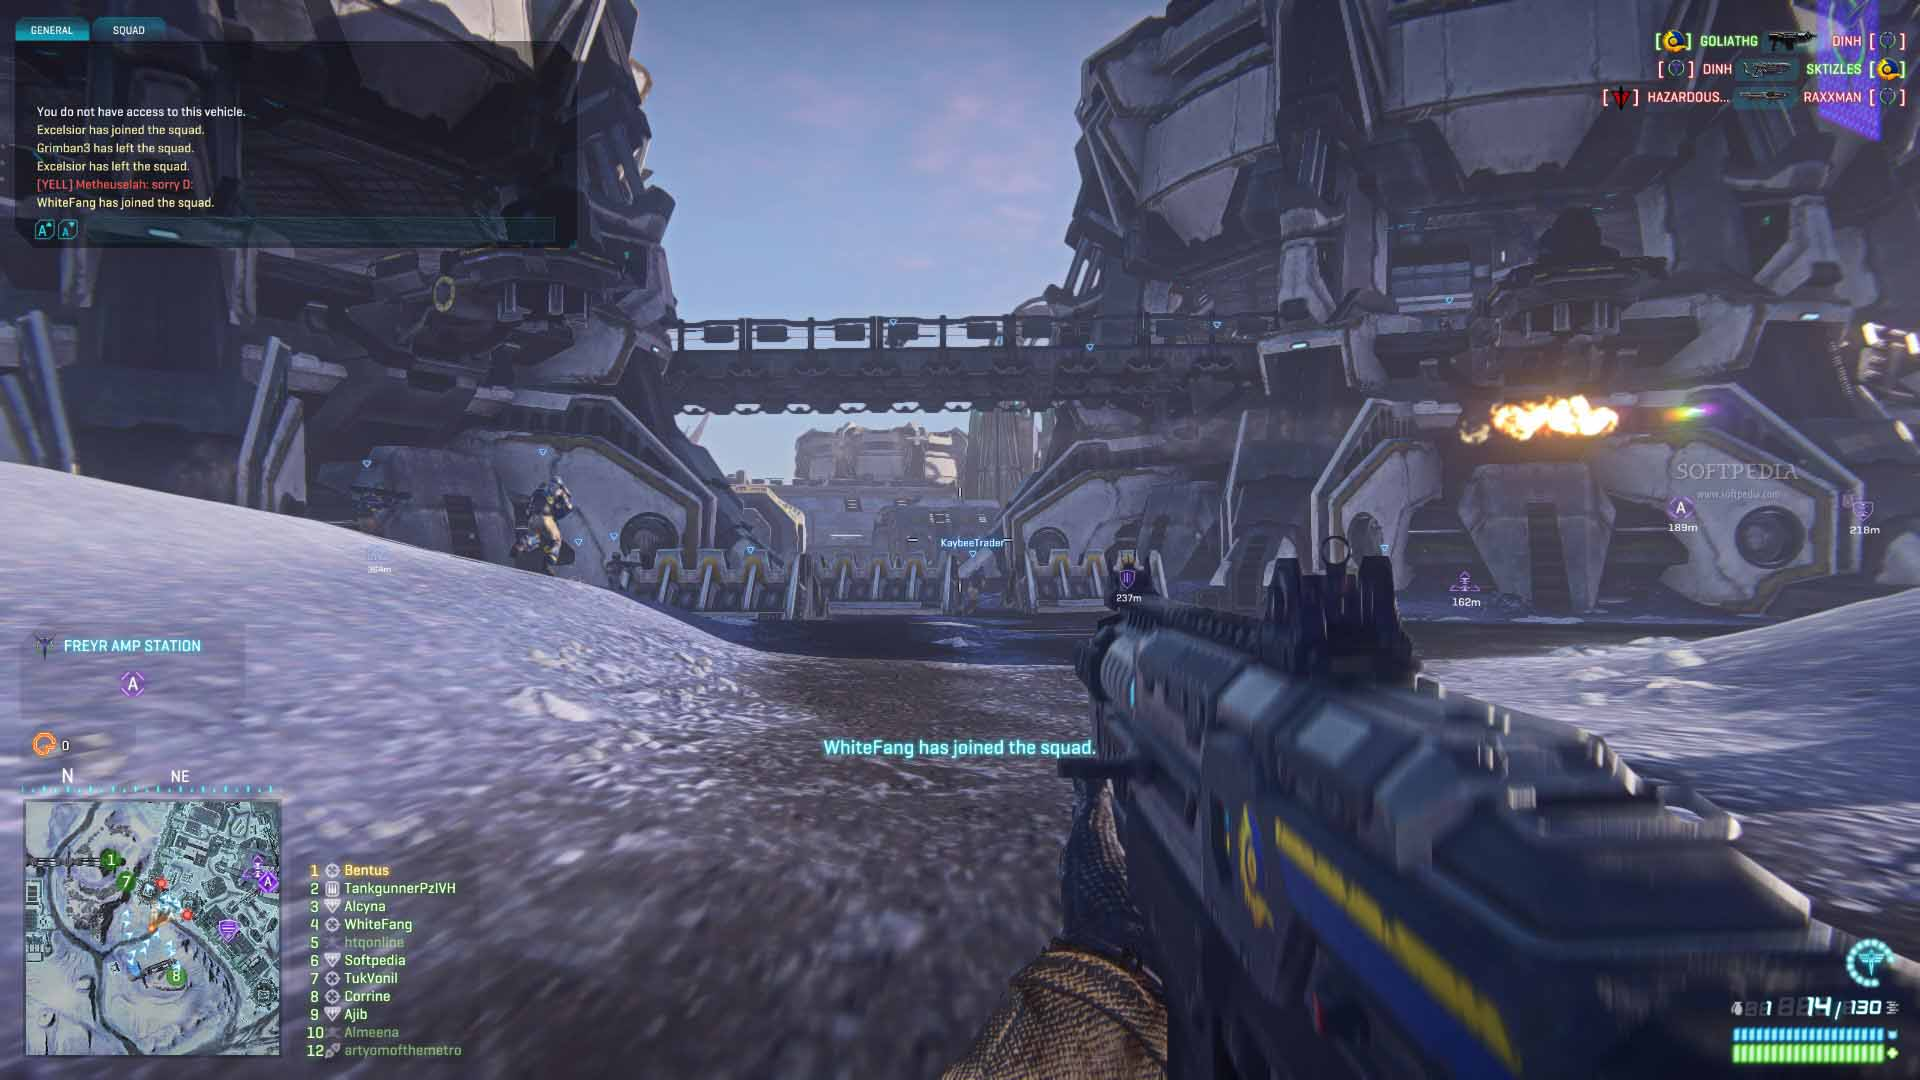 no crossplatform play between pc and ps4 versions of planetside 2